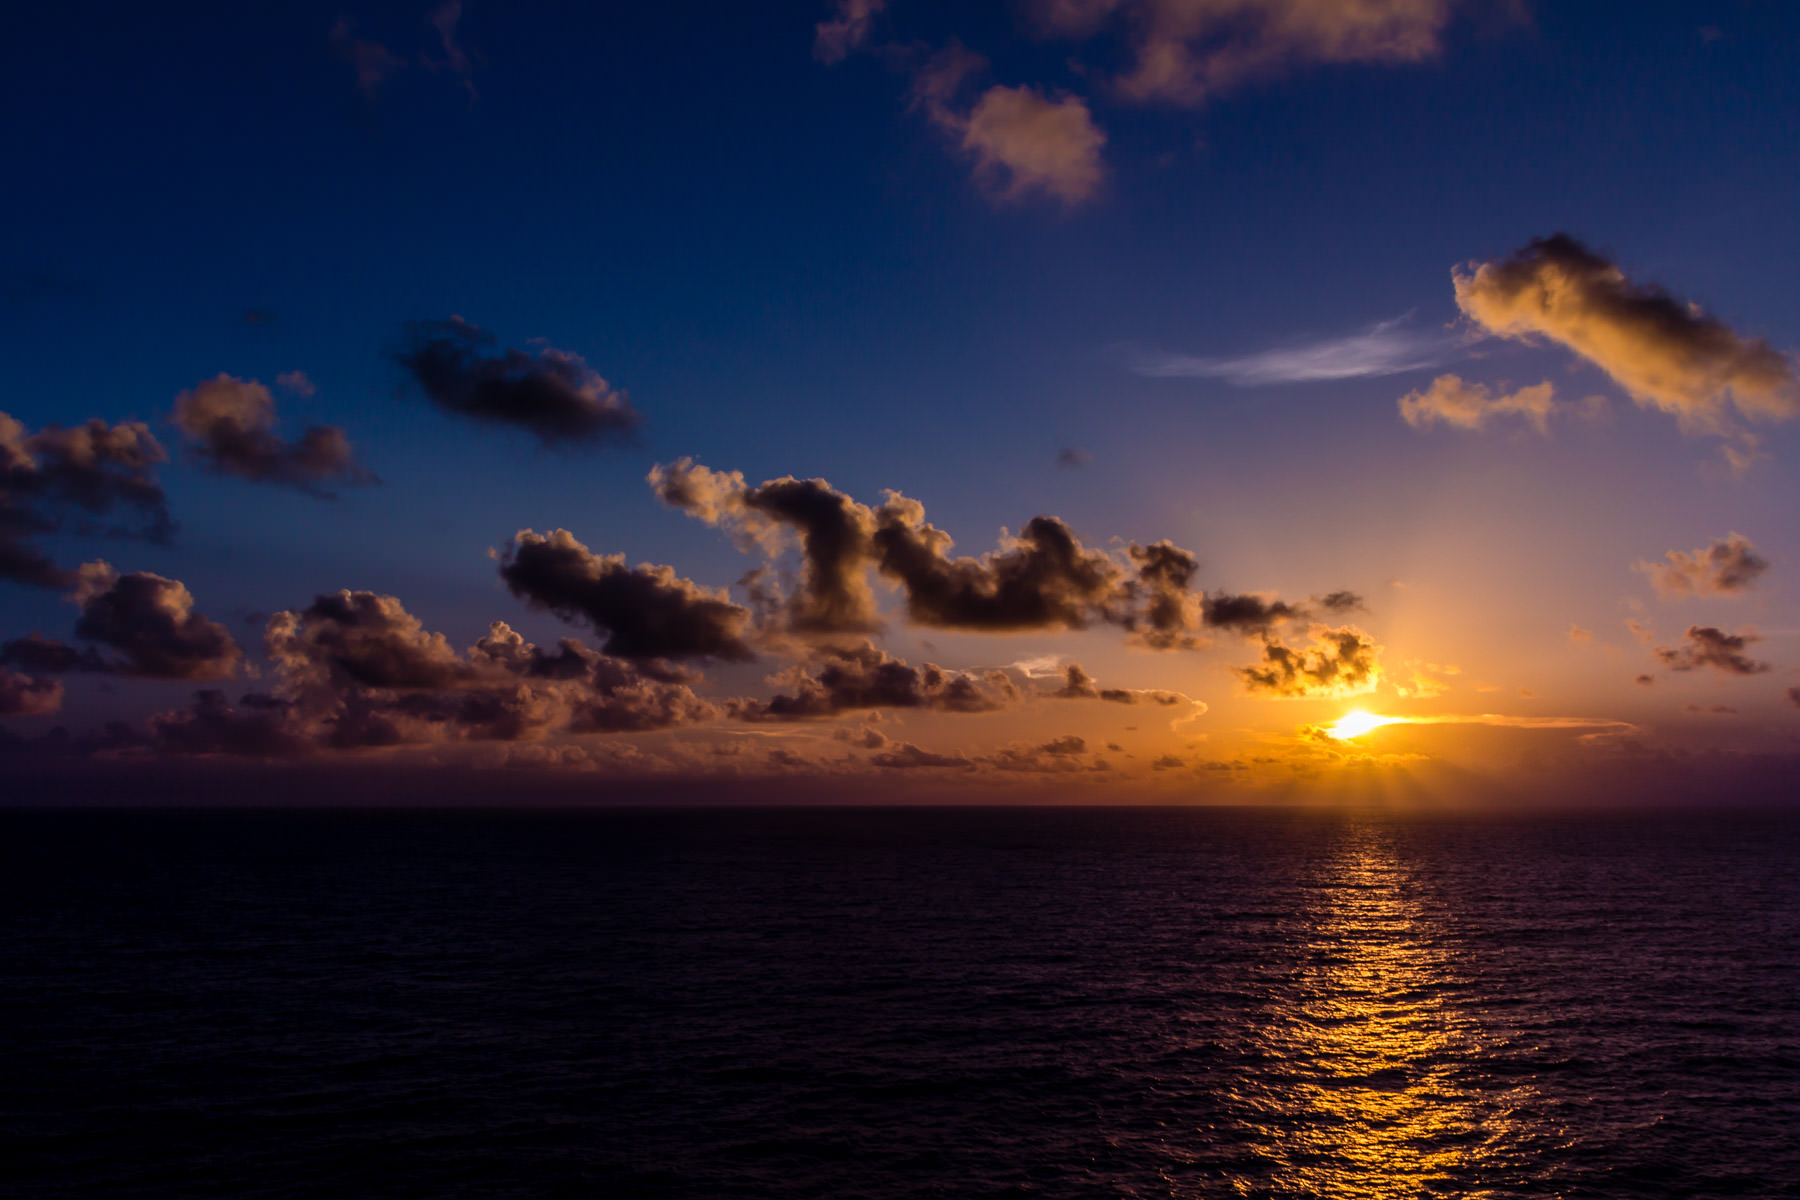 The sun rises over the Gulf of Mexico, as seen from the deck of the cruise ship Carnival Triumph.